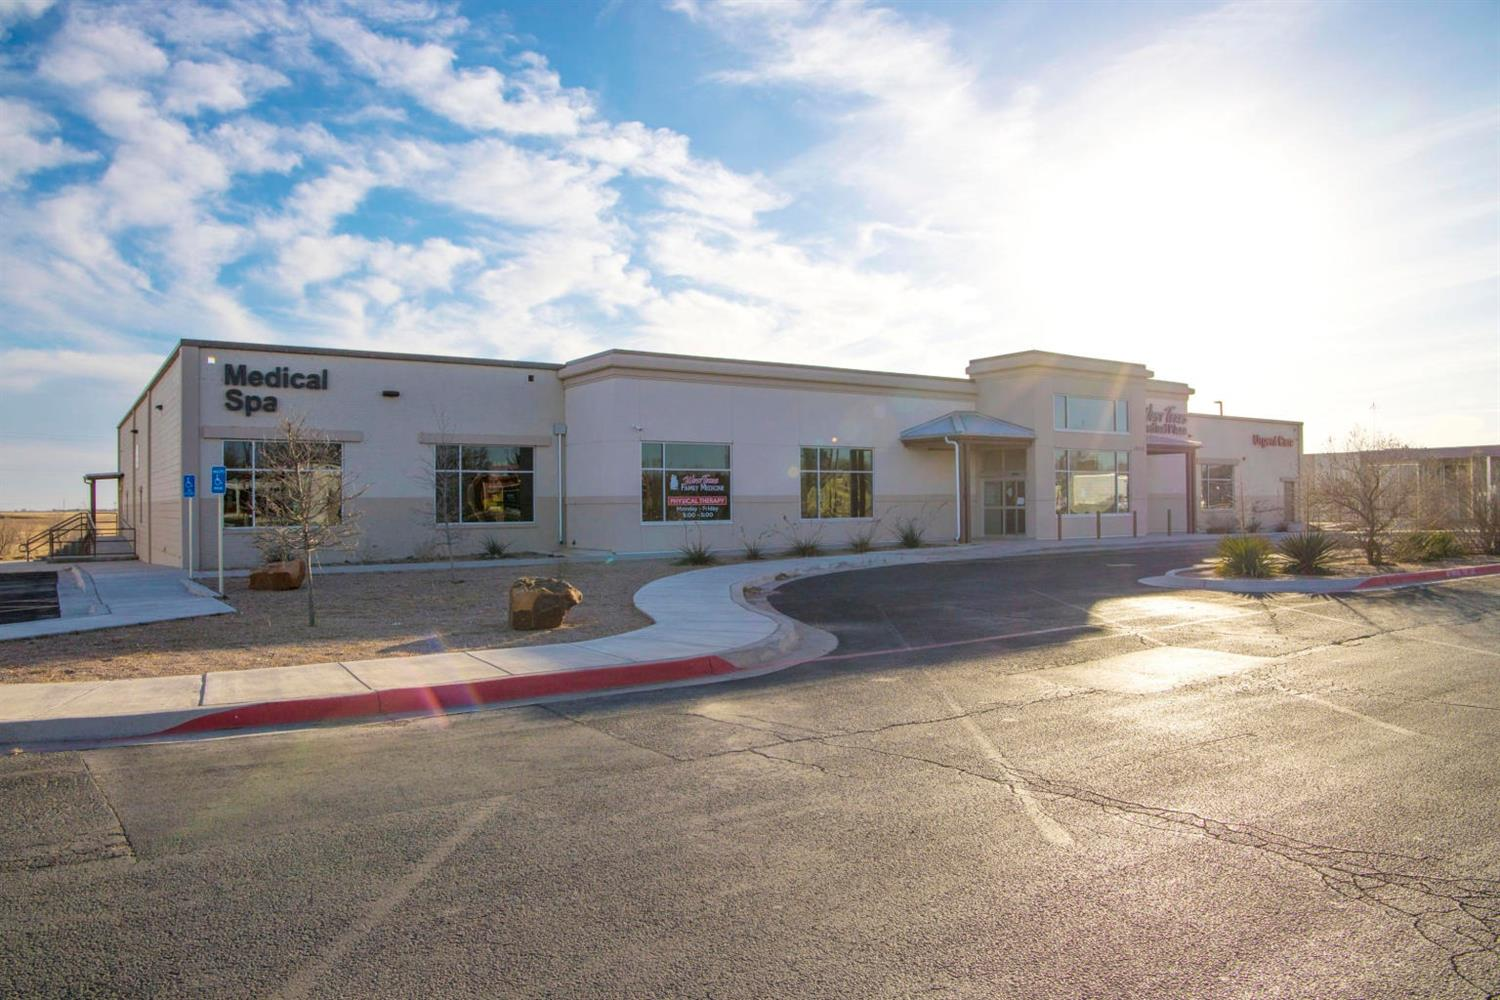 Designed as a state-of-the-art medical facility 2 years ago, this 19,779 sq. ft. building is now available in Plainview! Located on one of Plainview's highest traffic areas, this location on 5th Street is ideal and highly visible. Boasting over 70 separate rooms, this property will easily accommodate several medical professionals. The trauma area, physical therapy department and Medical Spa, with its own private entry, are only a few areas of this building. Highlights also include very nice and open waiting areas, wide hallways, high ceilings, motion detected LED lighting throughout and unlimited storage. The beautiful exterior, accentuated with low maintenance landscaping, is also surrounded with 89 parking spaces for staff and visitors.